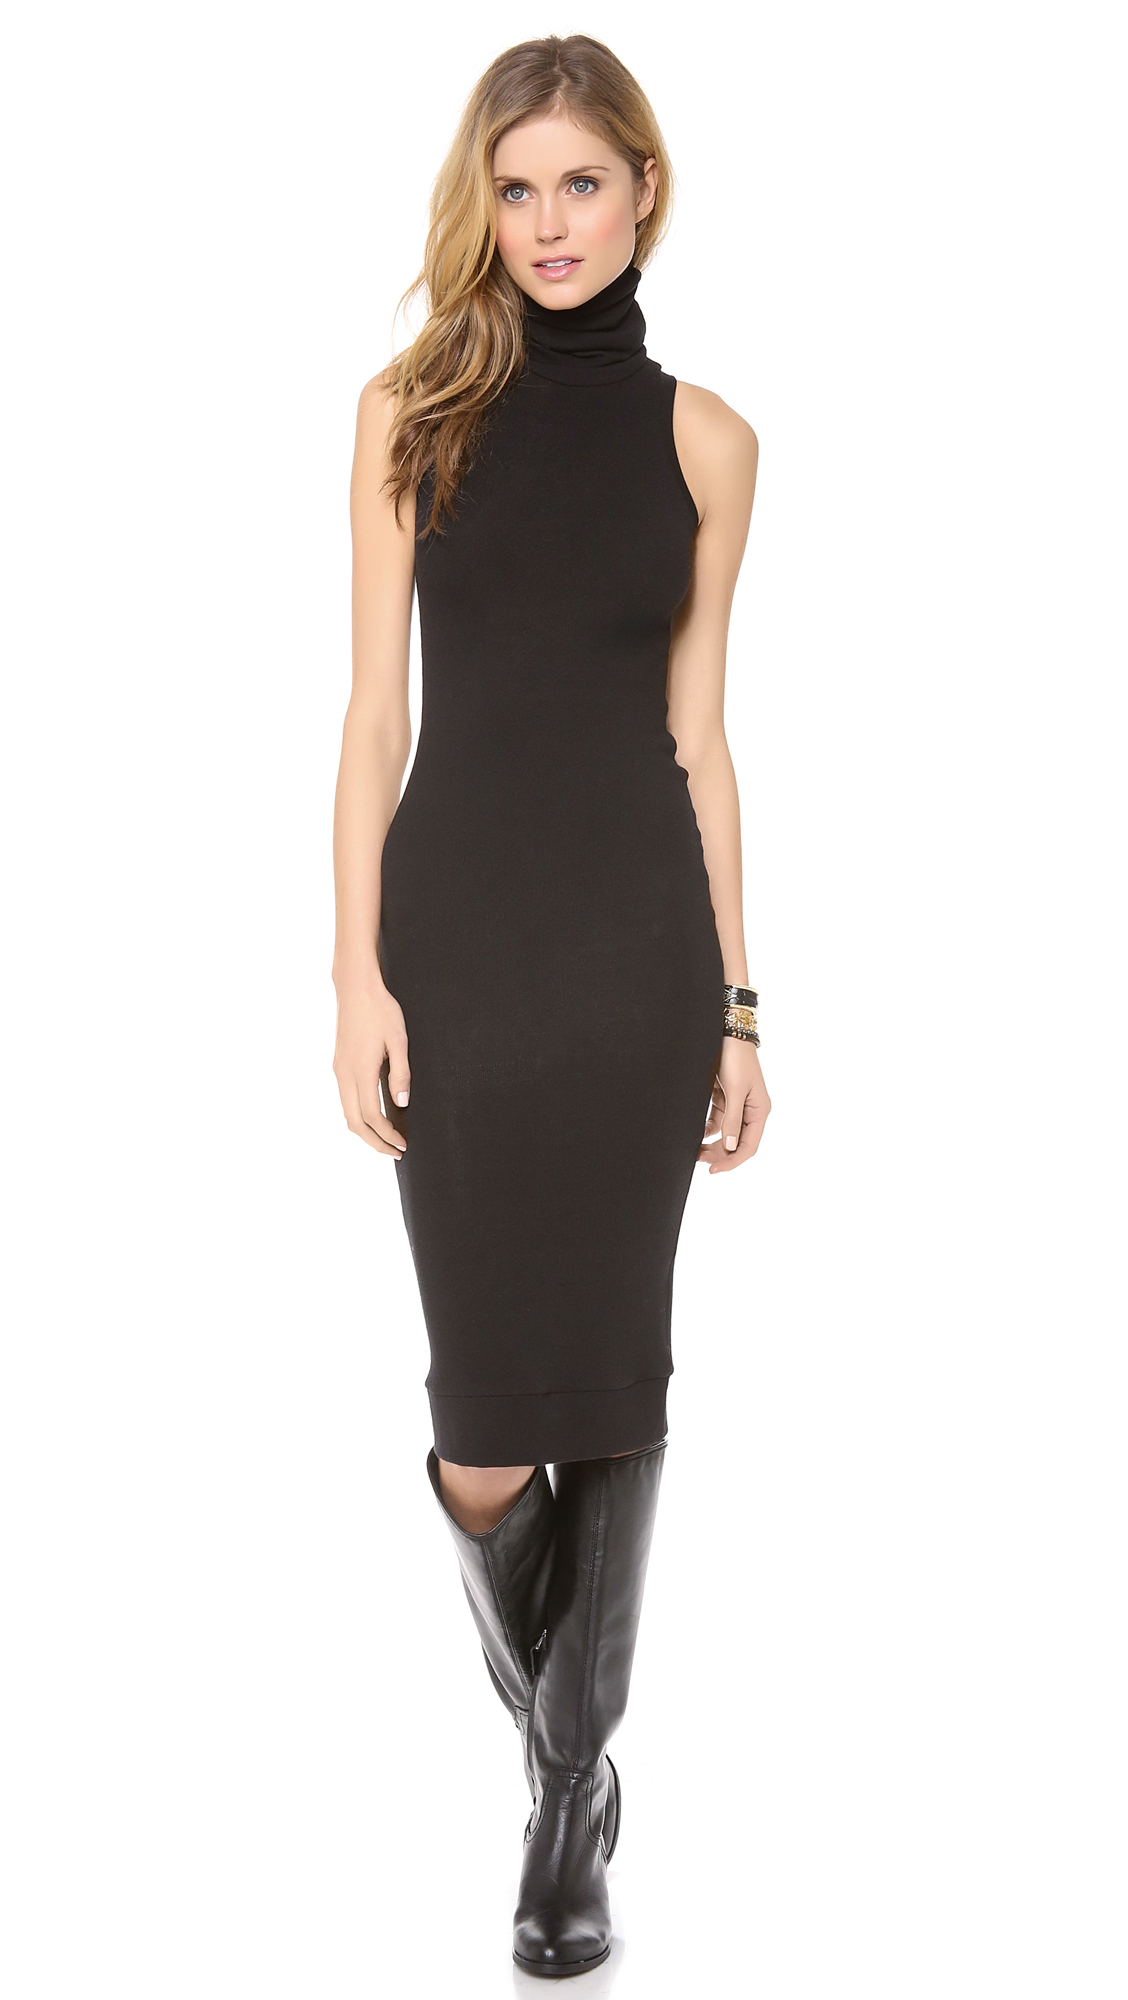 Rachel Pally Sleeveless Turtleneck Dress Black In Black